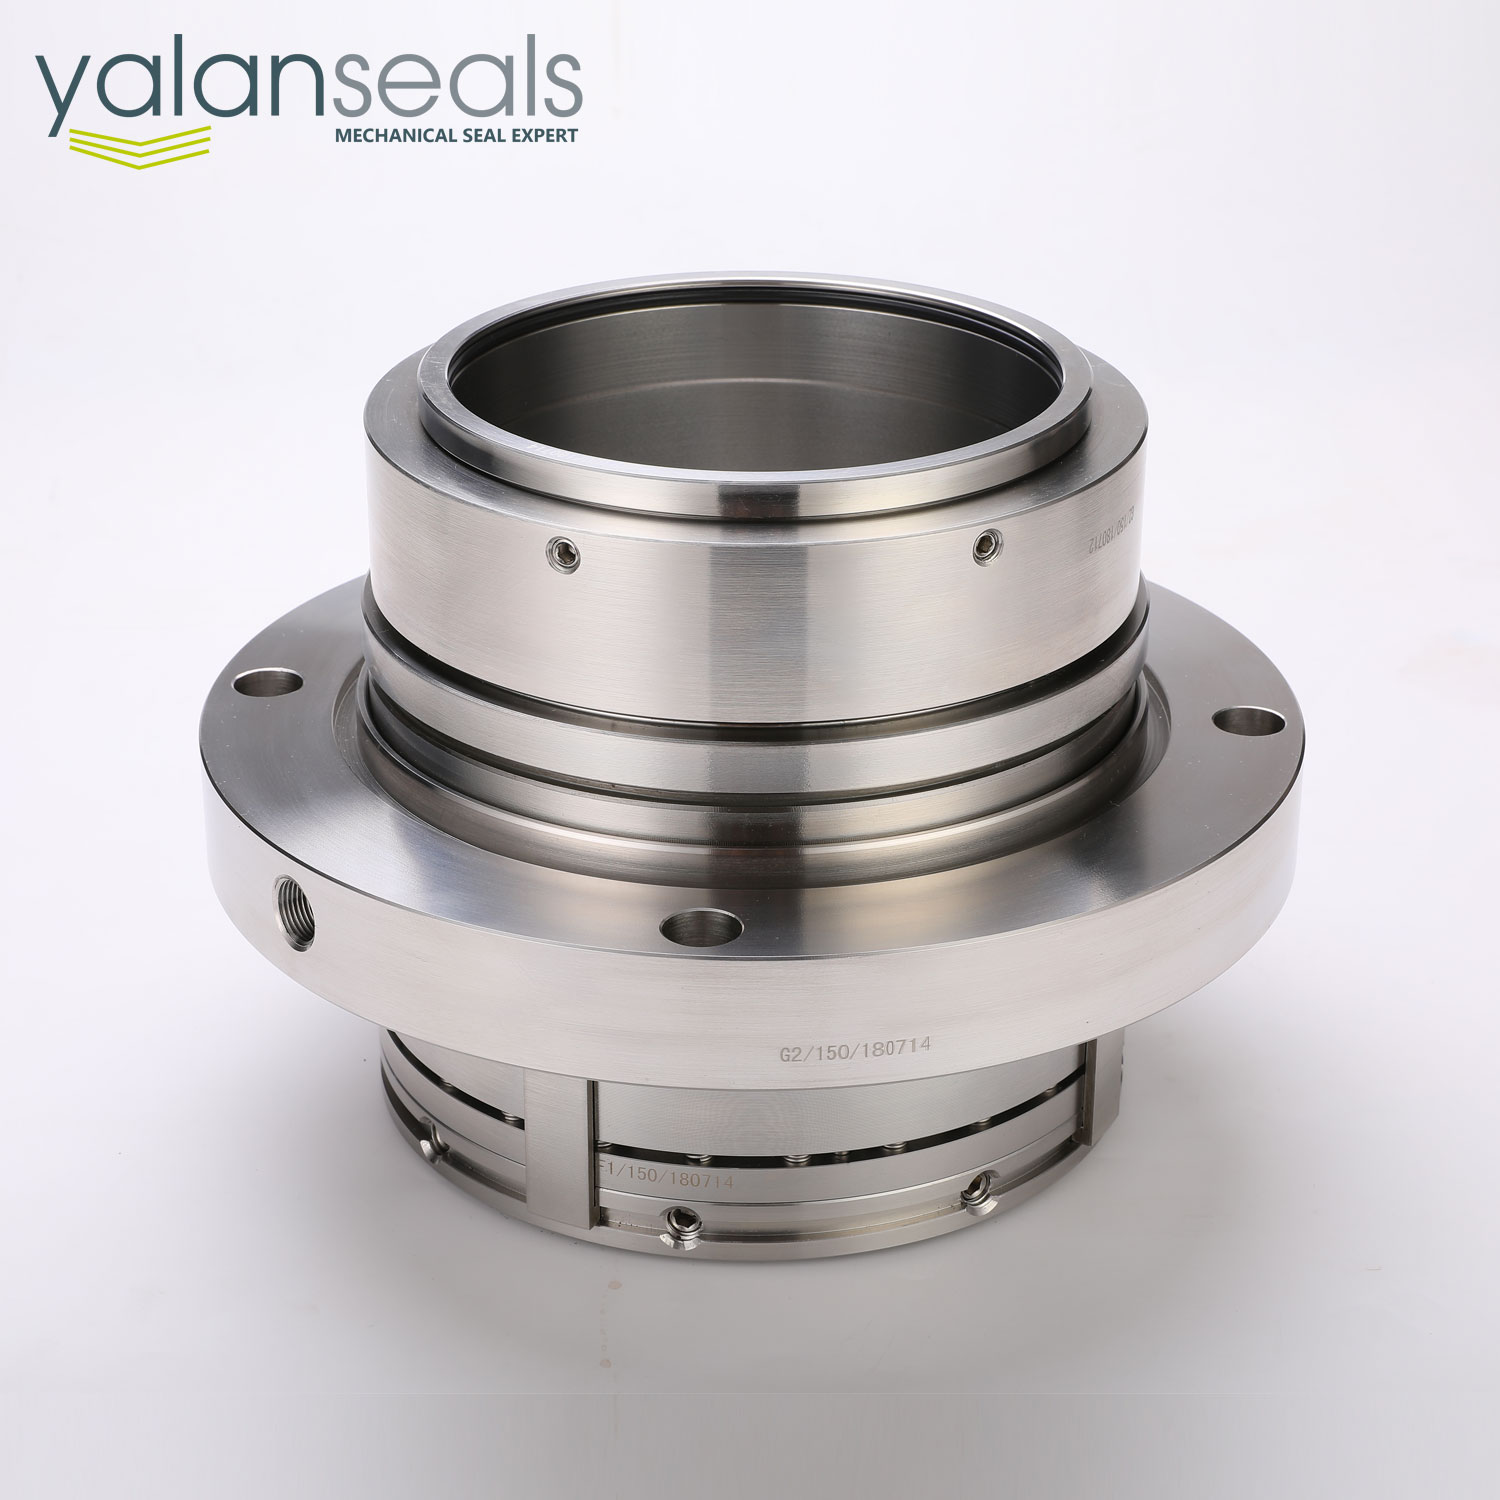 QL800 Cartridge Mechanical Seal for chemical circulating pumps, booster Pumps and fresh water pumps